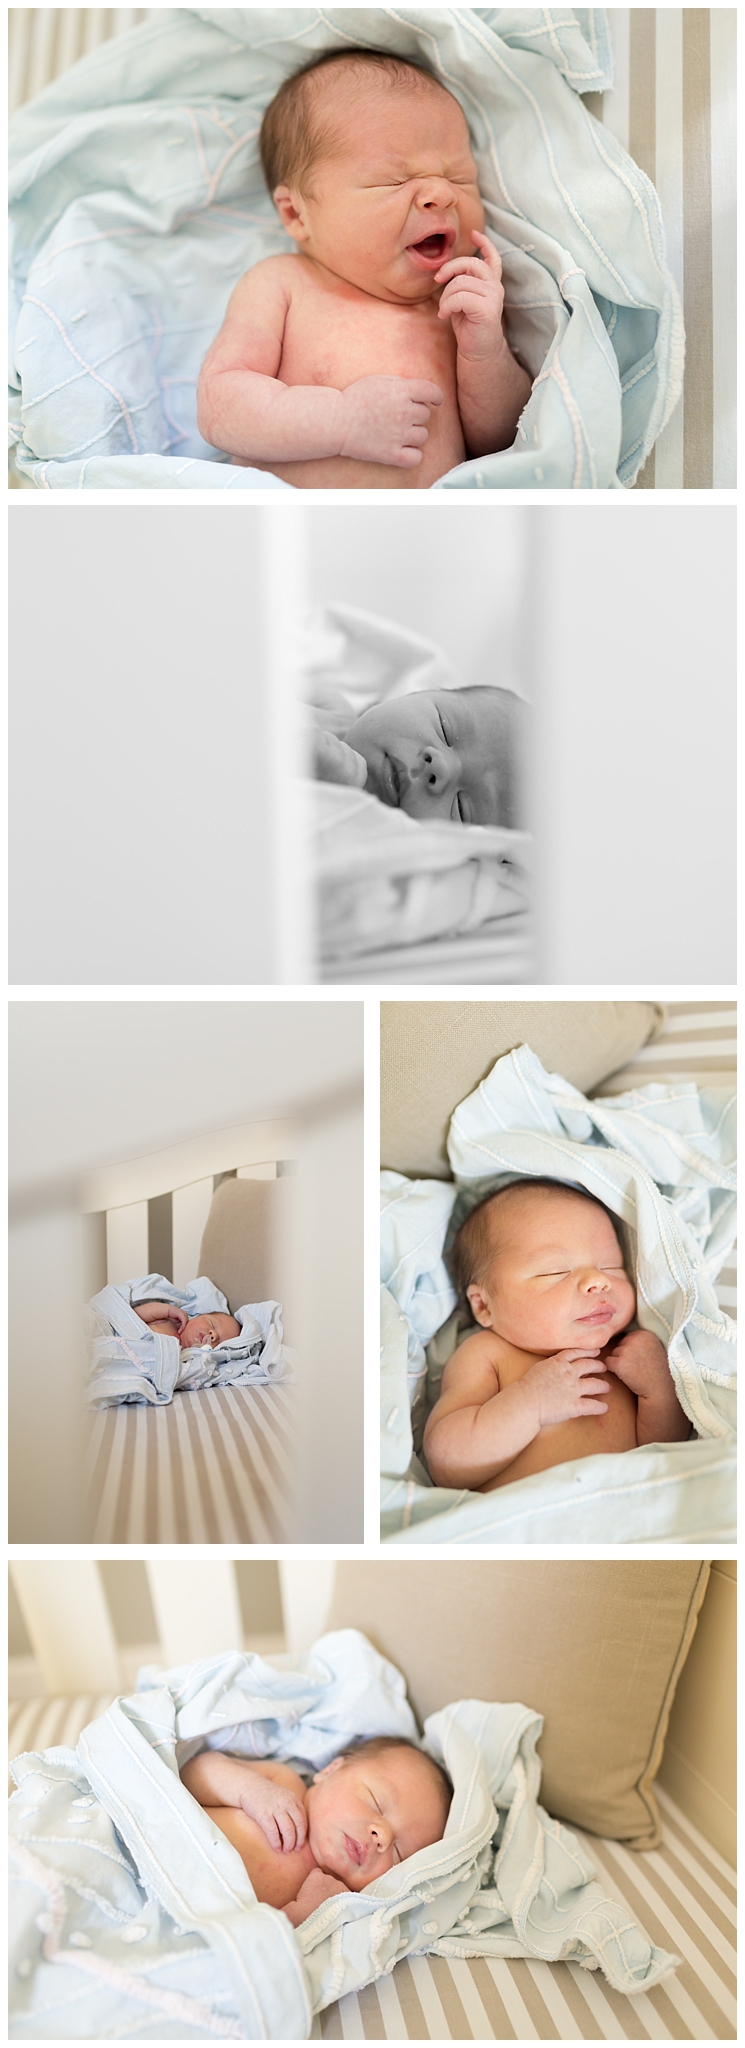 newborn baby boy yawning and sleeping in crib